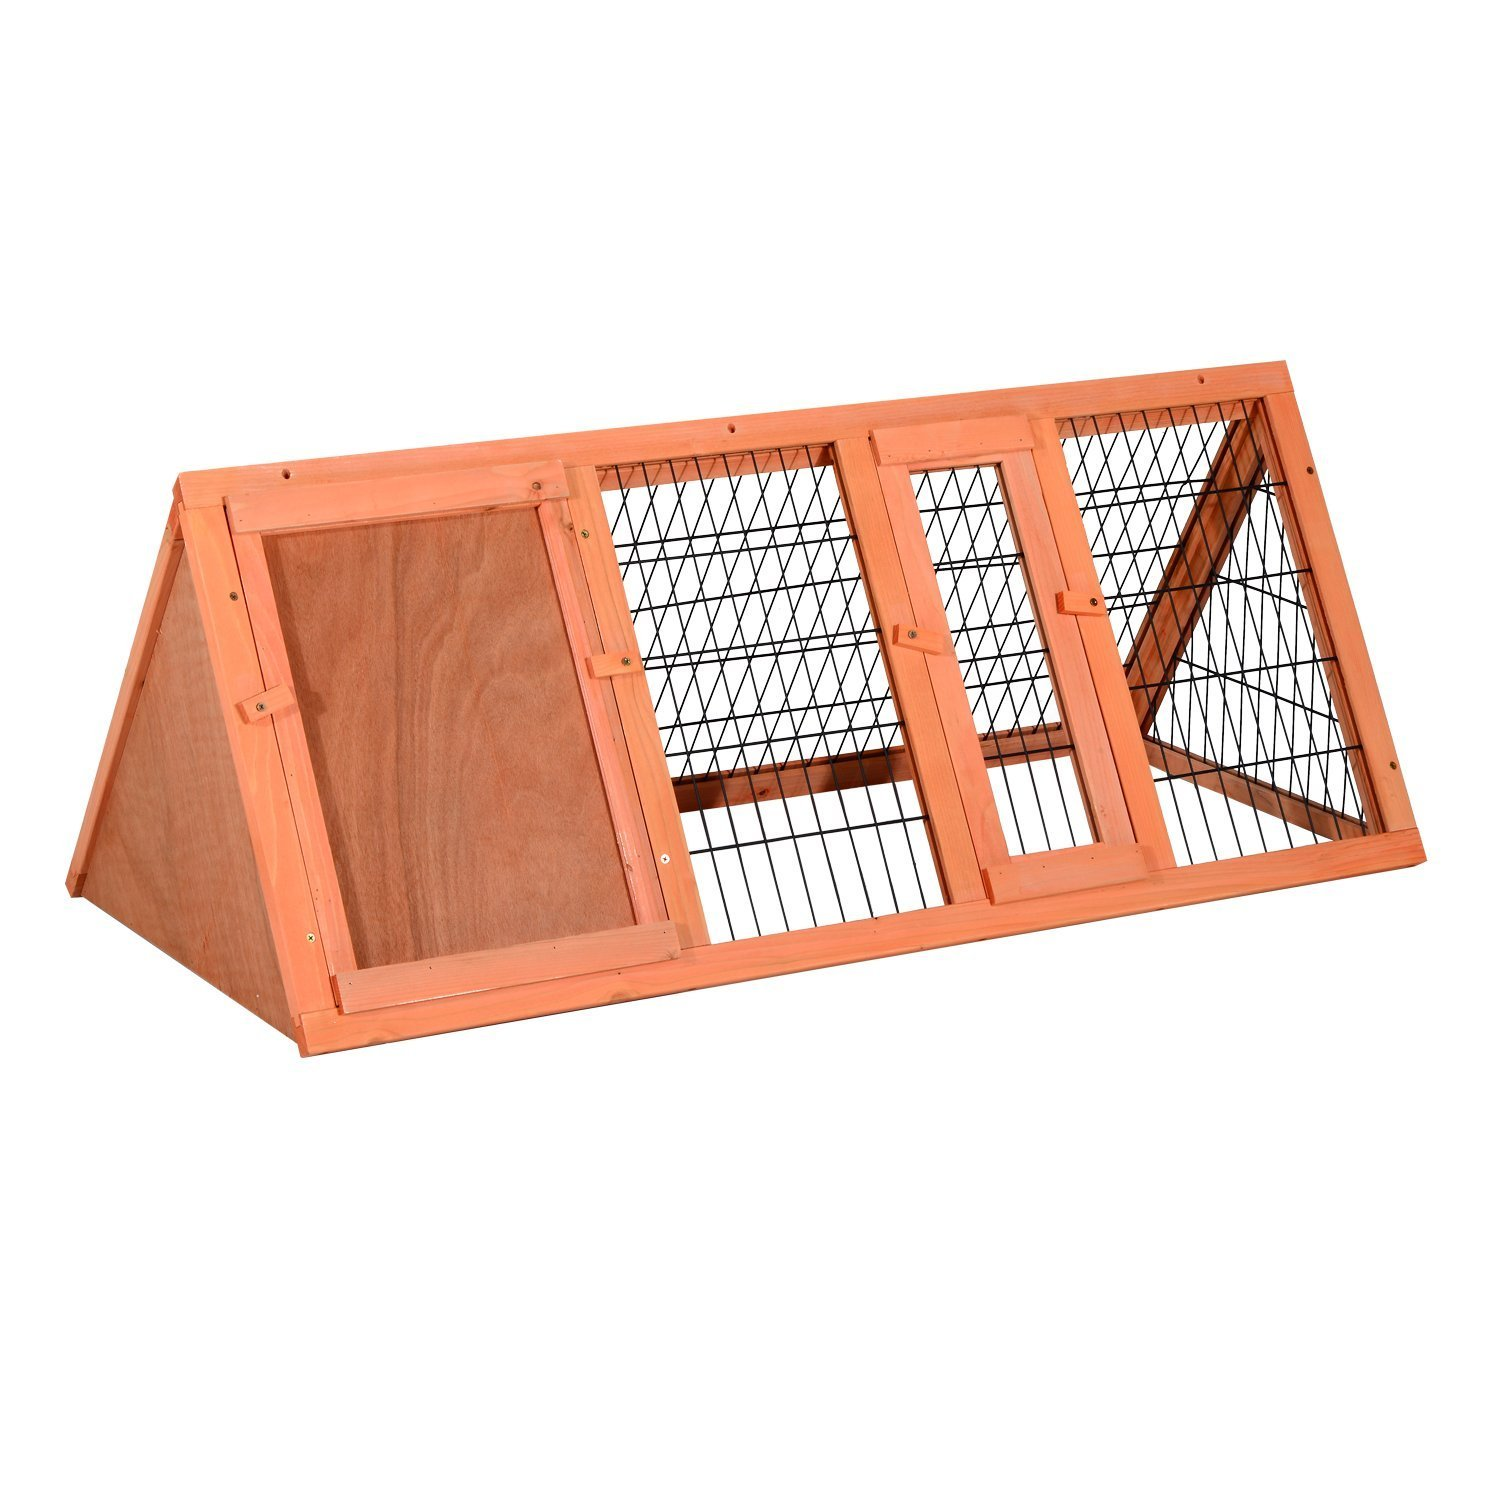 PawHut Wooden Outdoor A-Frame Rabbit and Small Animal Hutch by PawHut